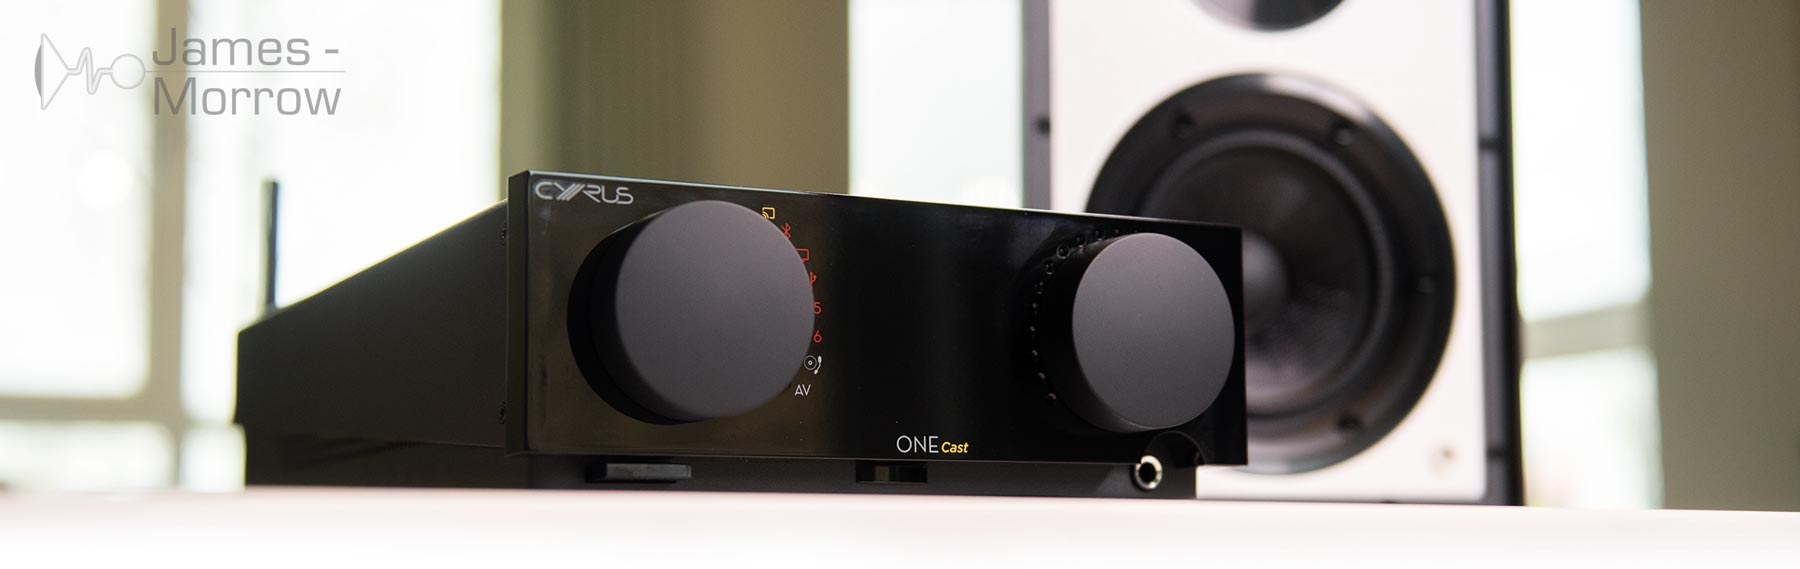 Cyrus One Cast Lifestyle with Speaker